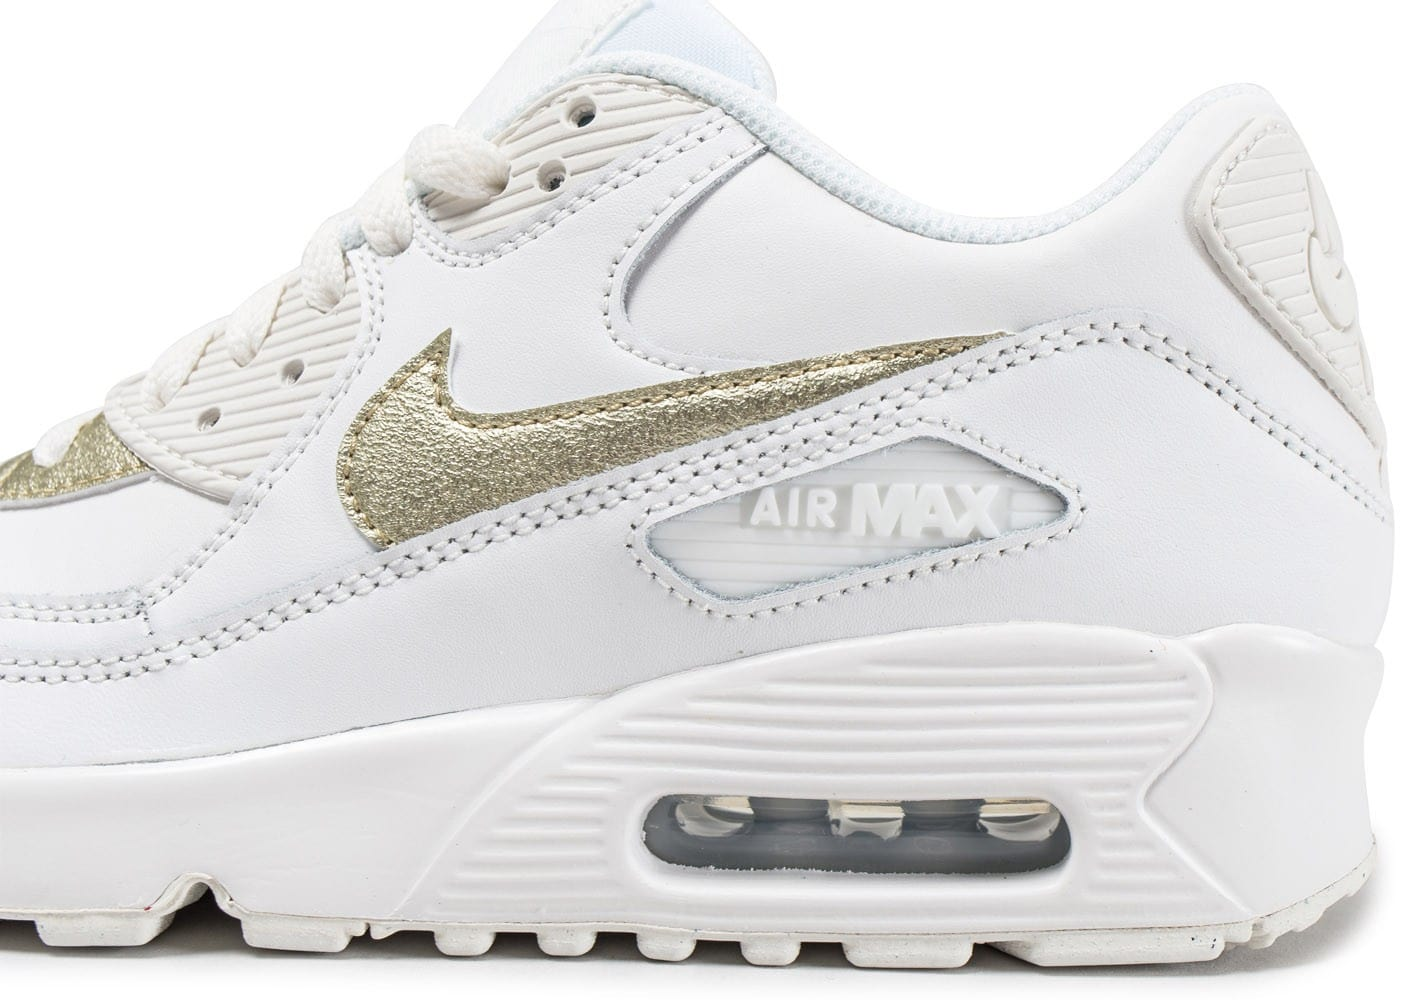 reputable site 1a08b 28d6f Chaussures Nike Air Max 90 Leather Junior blanche et or vue dessus